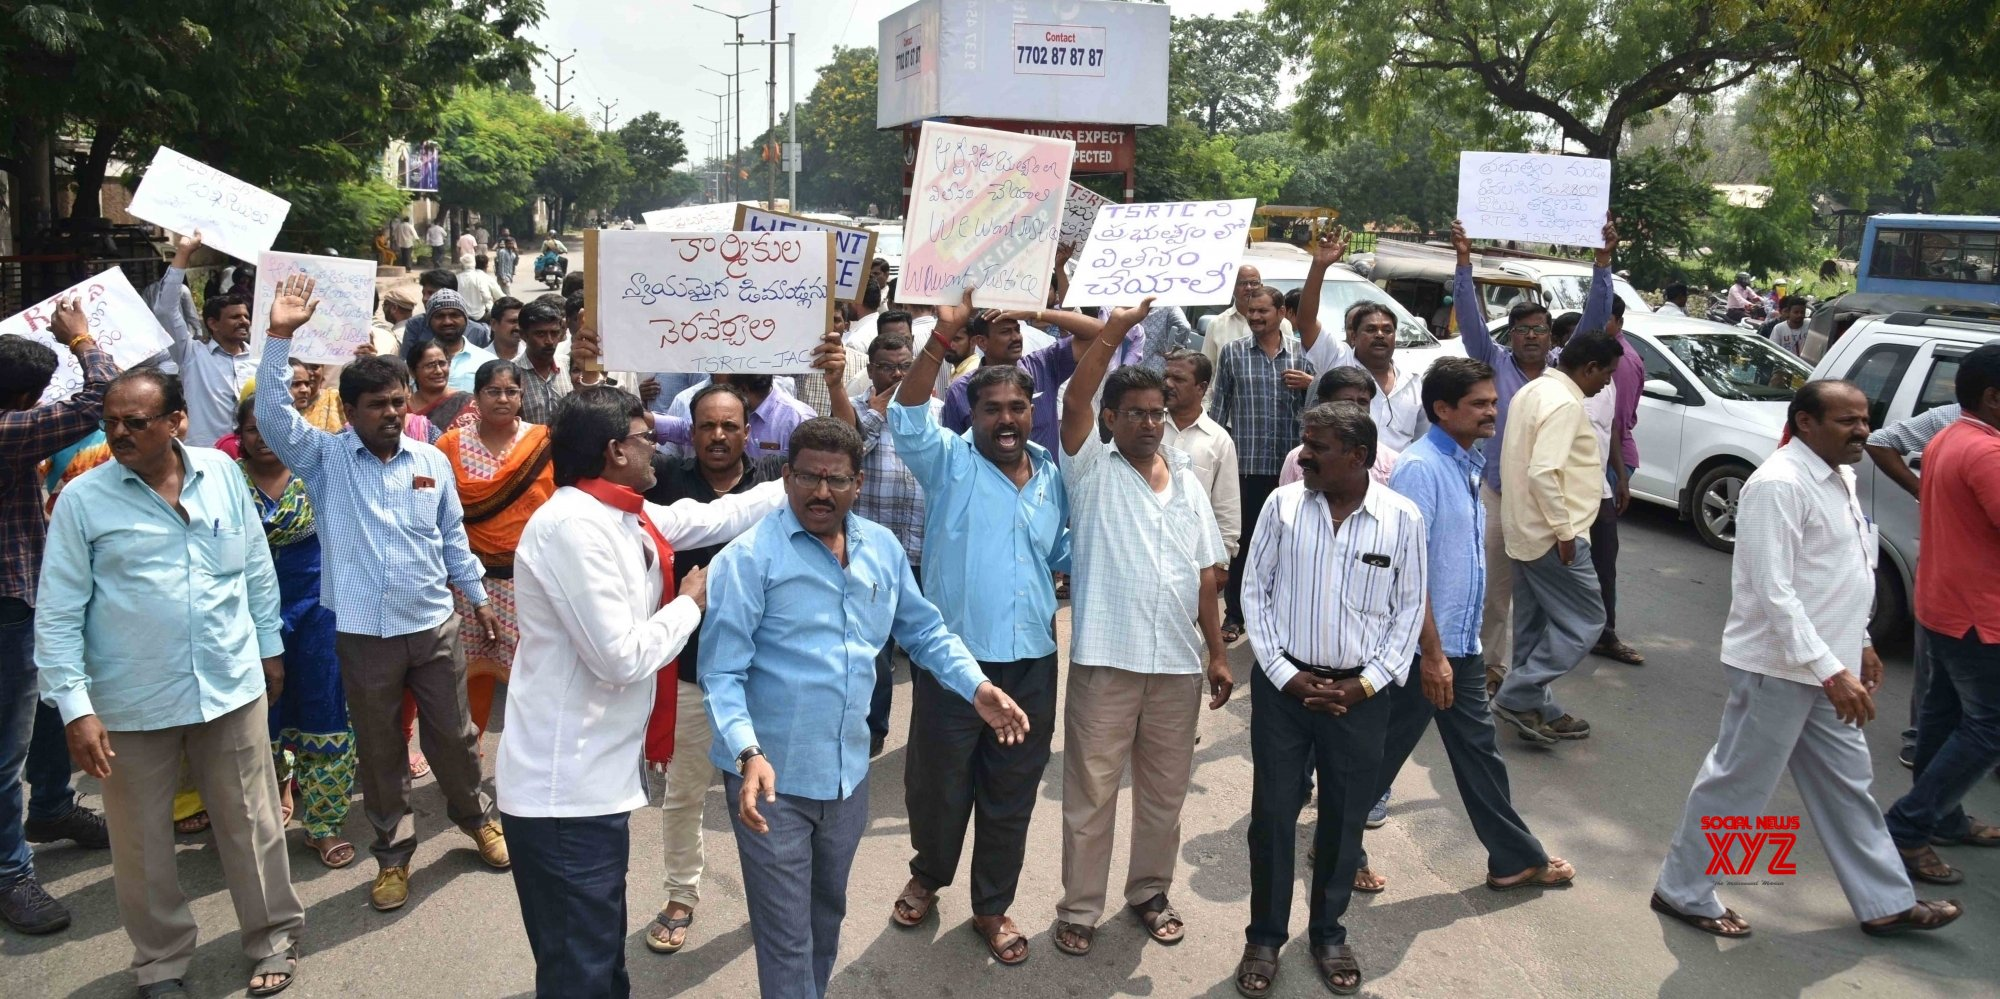 RTC employees not allowed protest march in Hyderabad